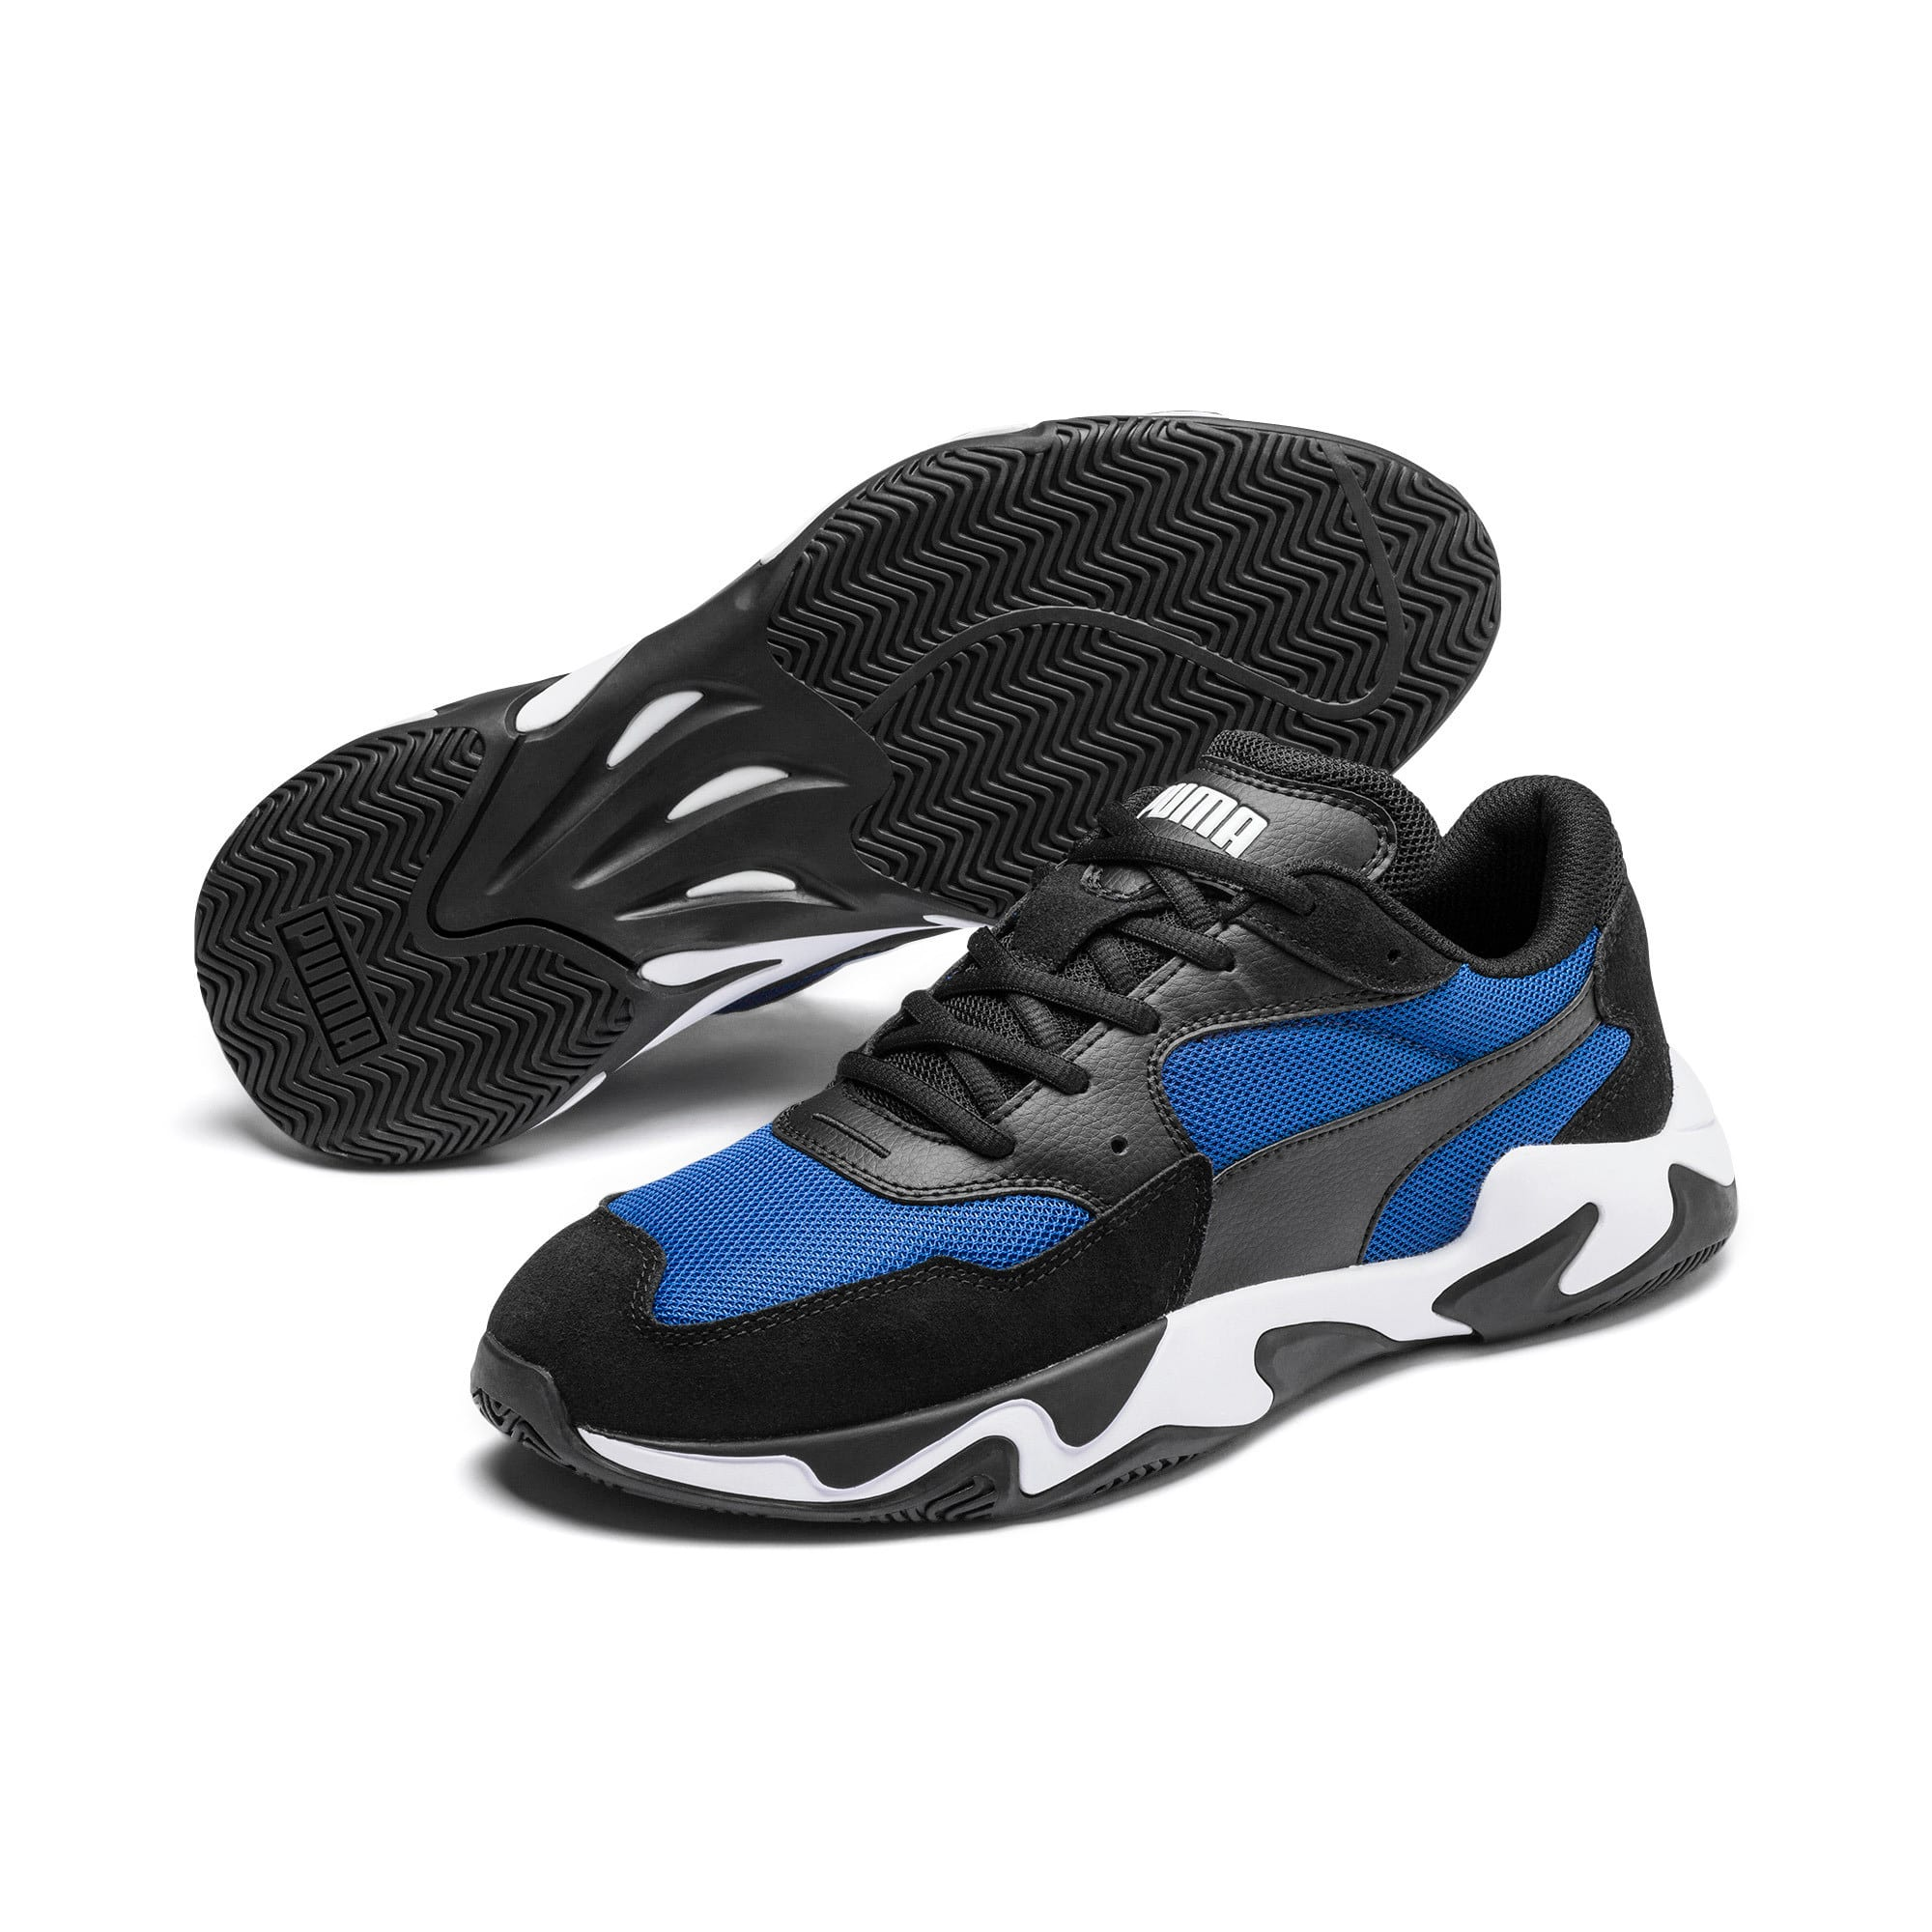 Thumbnail 3 of Storm Adrenaline Sneaker, Puma Black-Galaxy Blue, medium